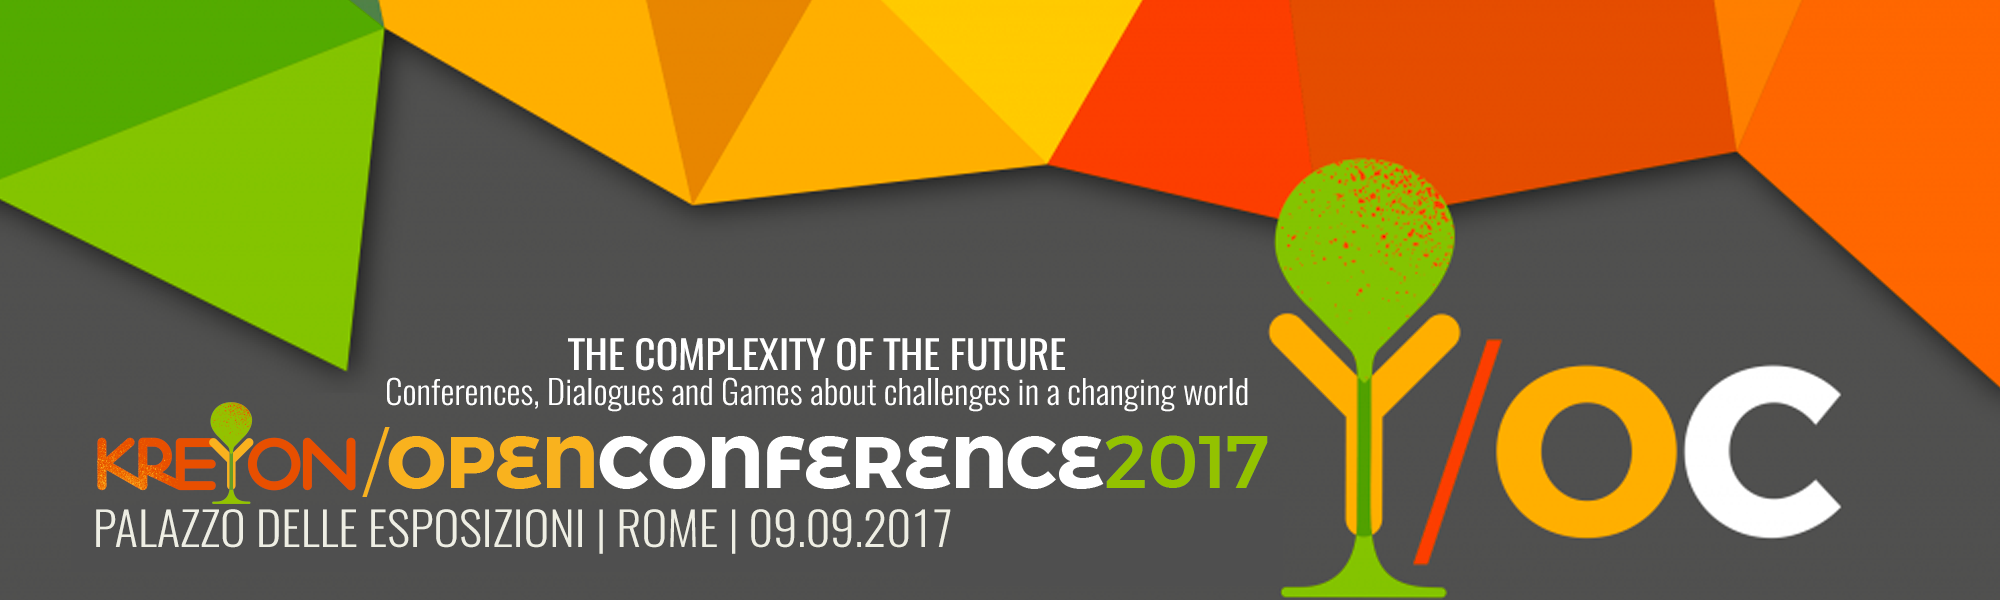 Kreyon Open Conference - The Complexity of the Future